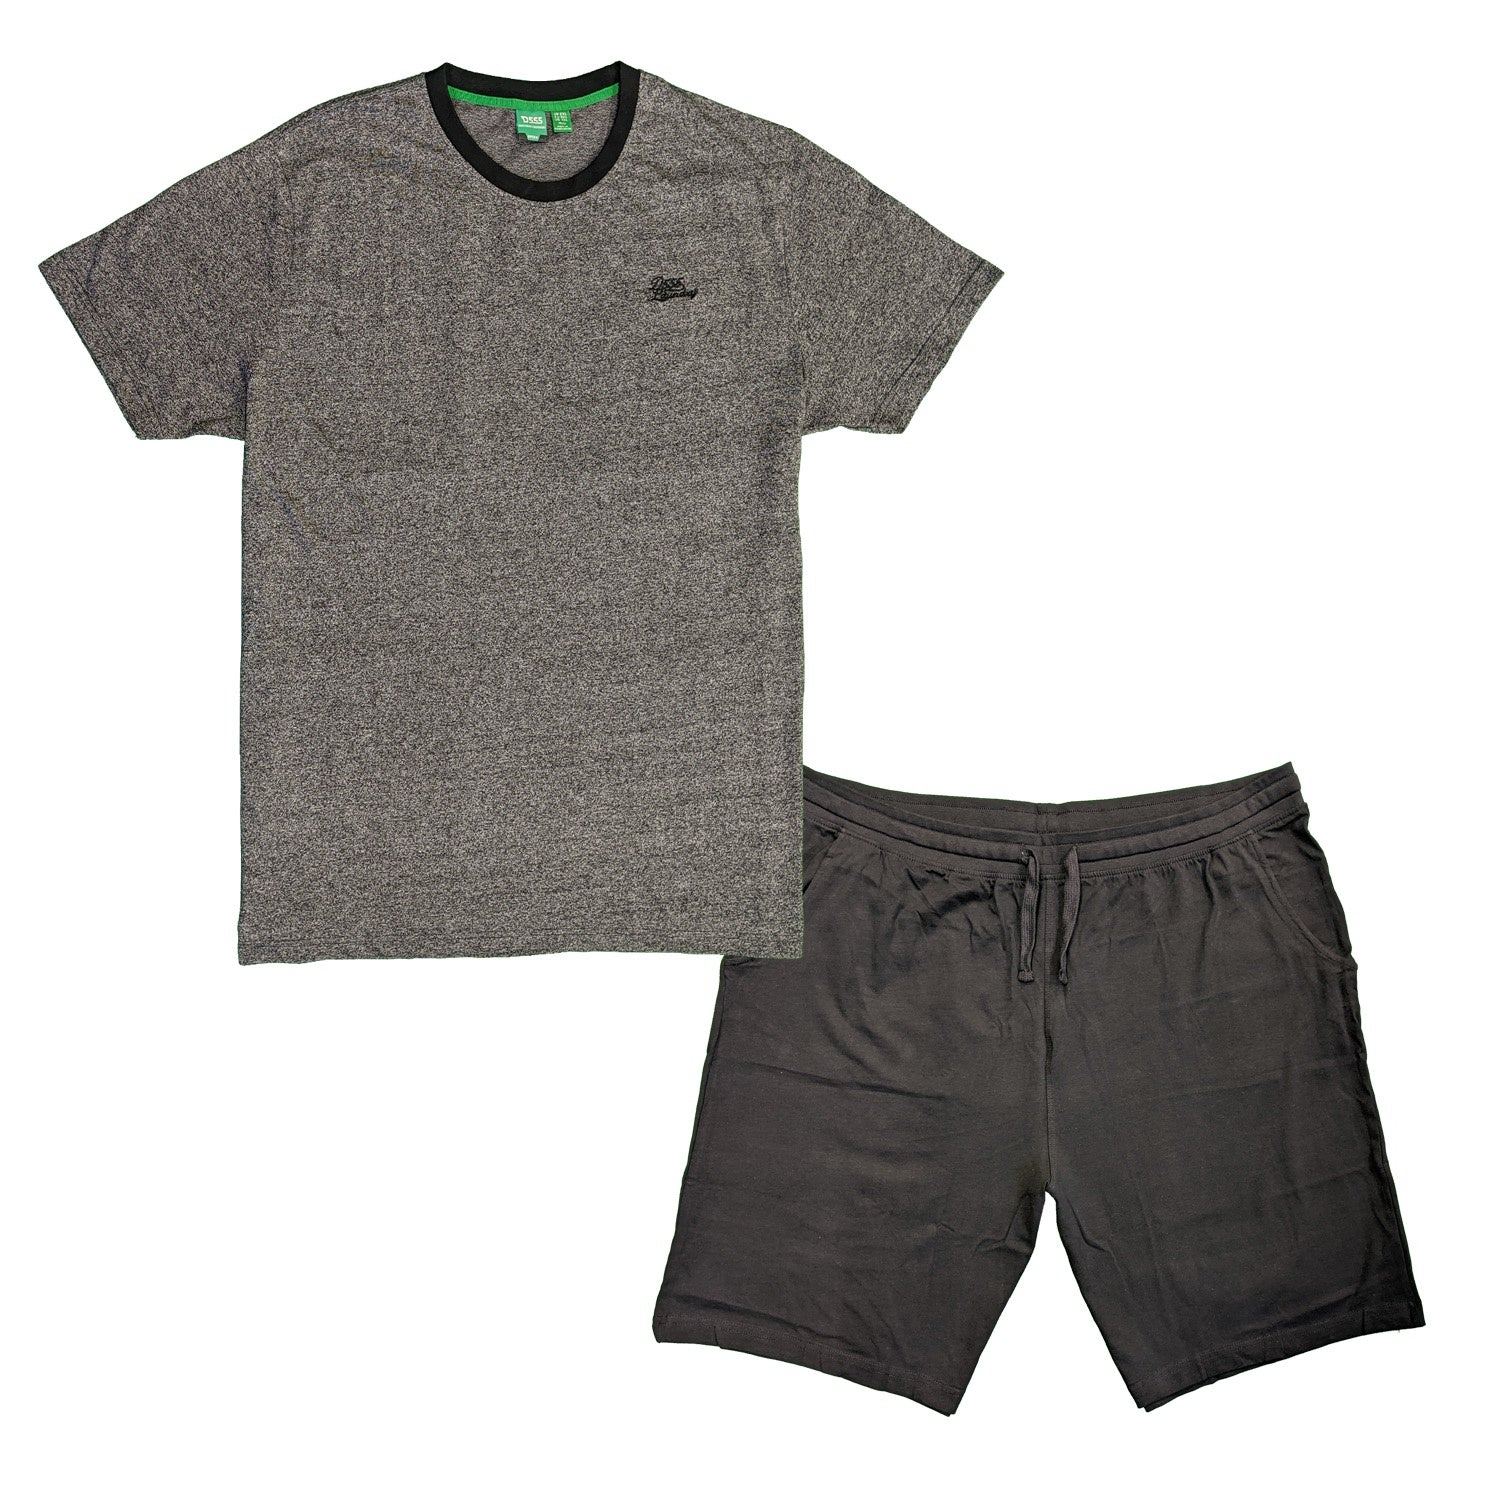 D555 PJs (T-Shirt & Shorts) - KS70742 - Tyson - Grey / Black 1